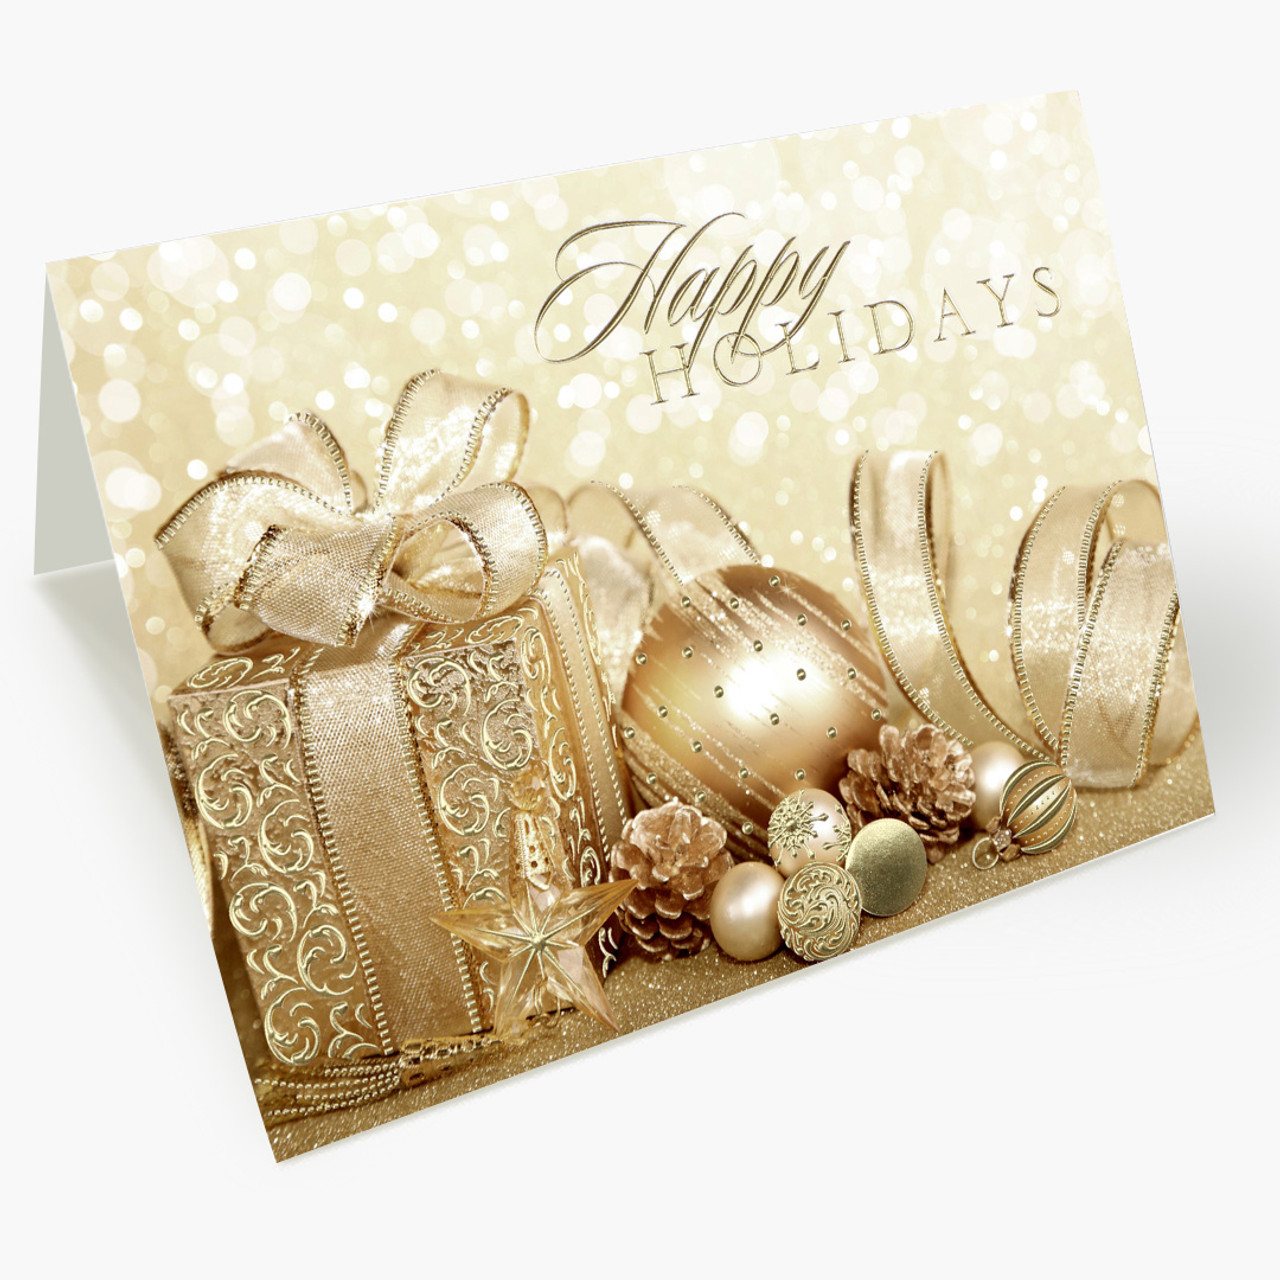 Happy Holidays Gold Christmas Card